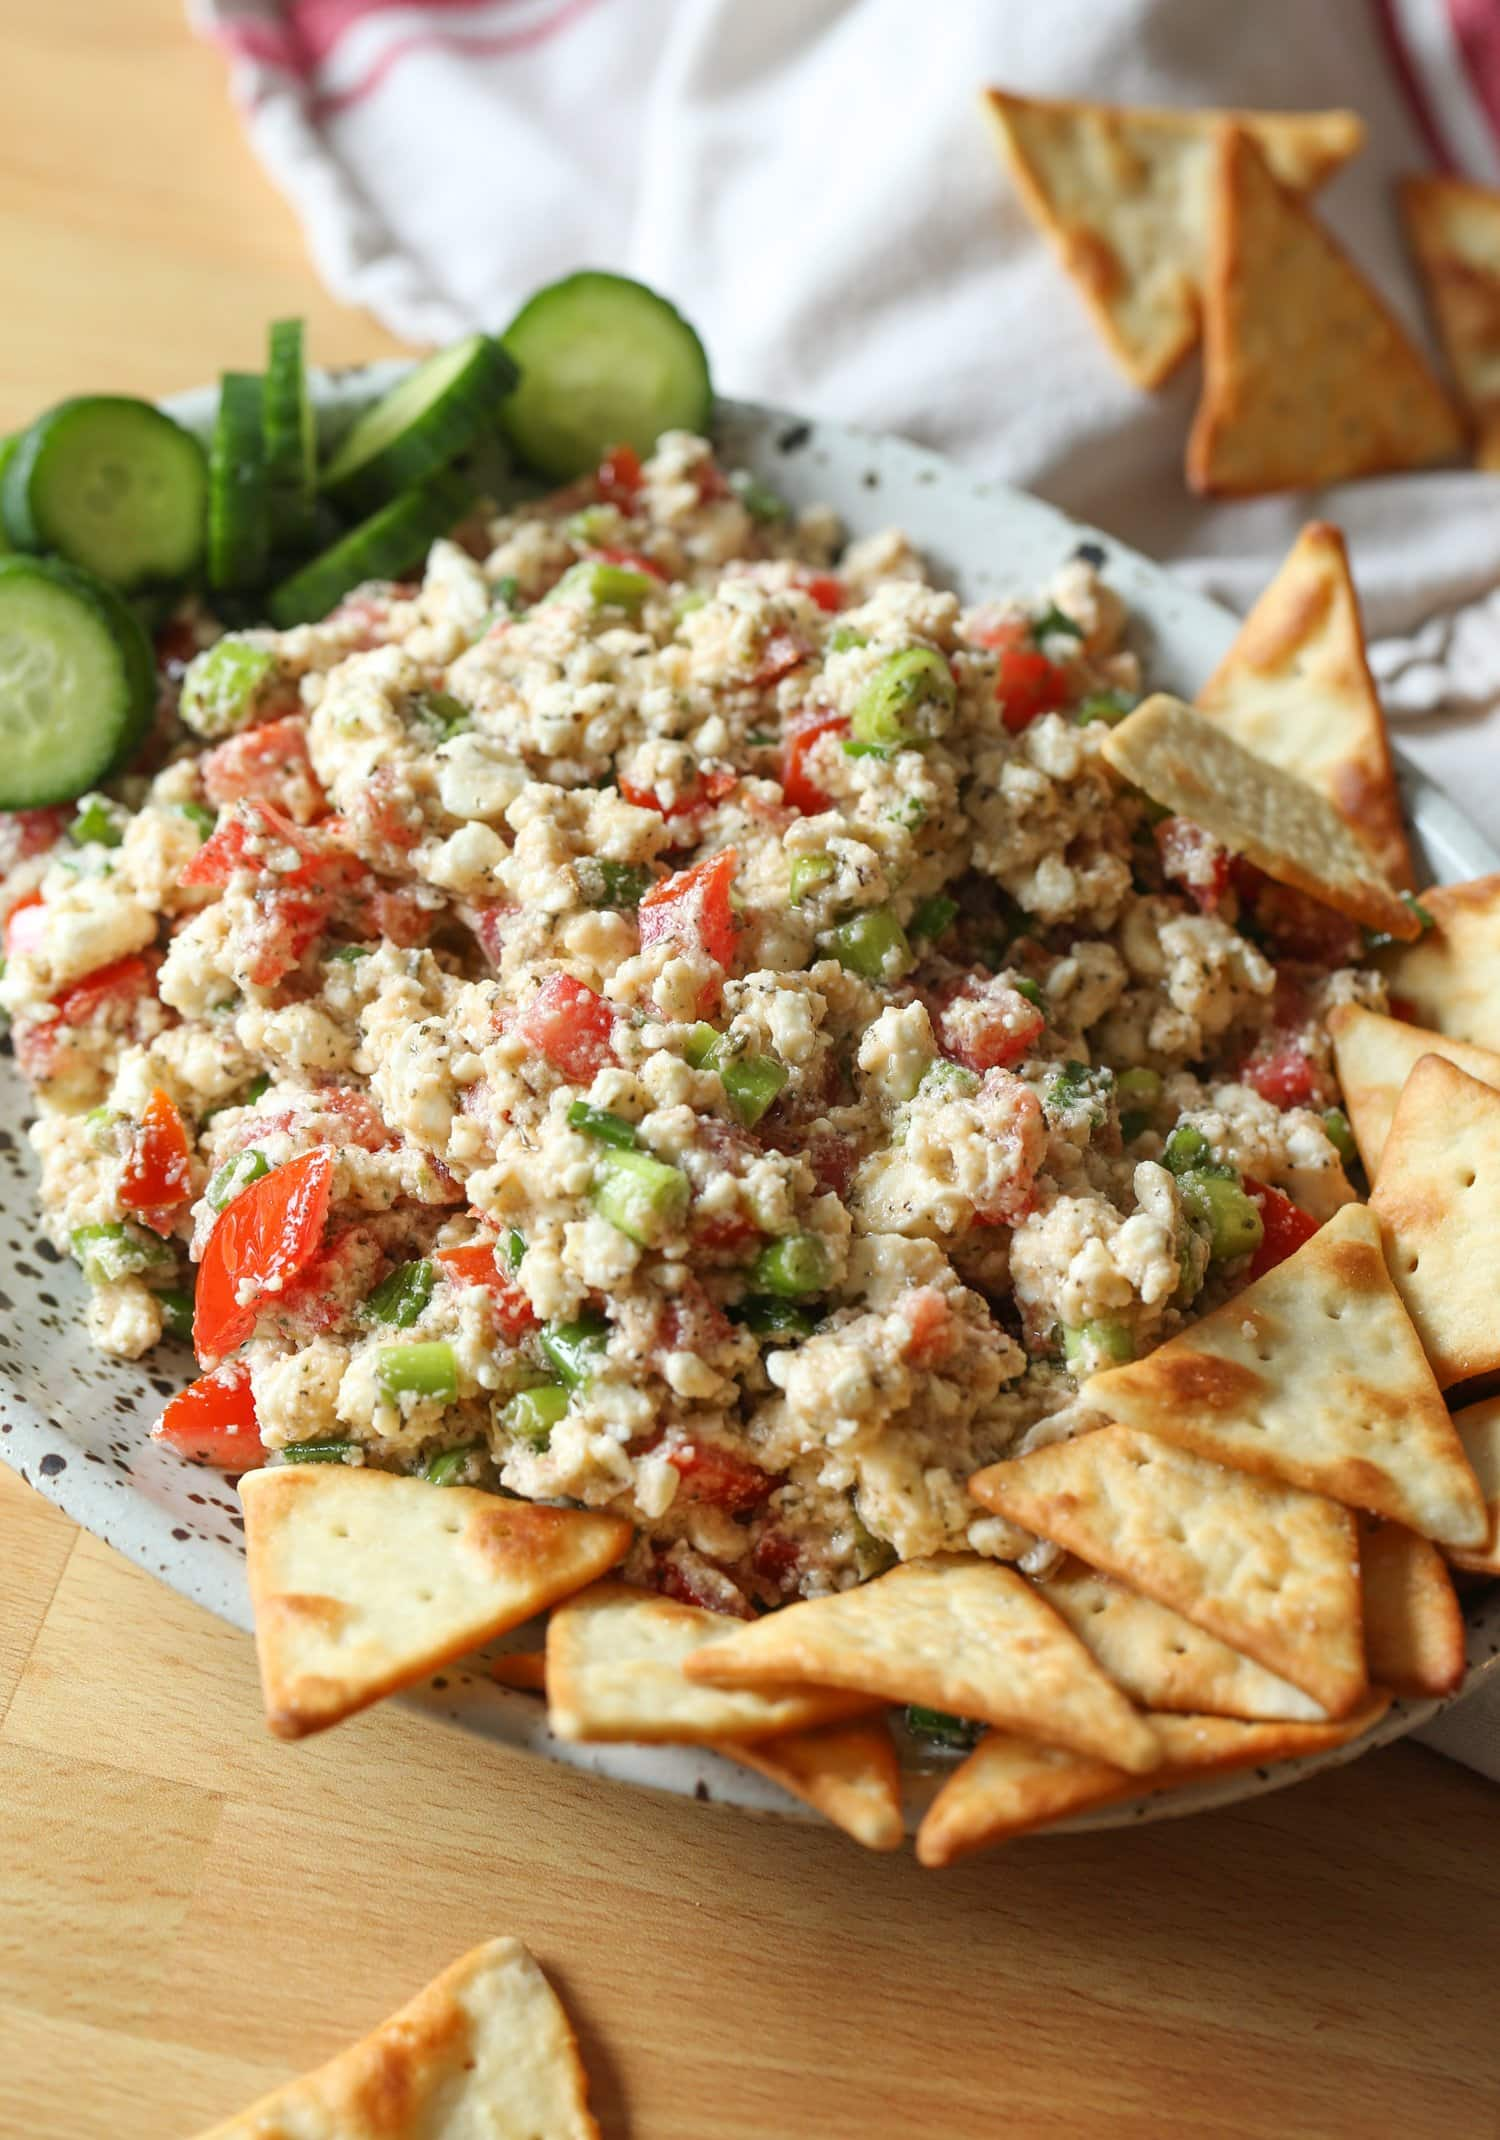 Dip on a platter with pita chips and veggies